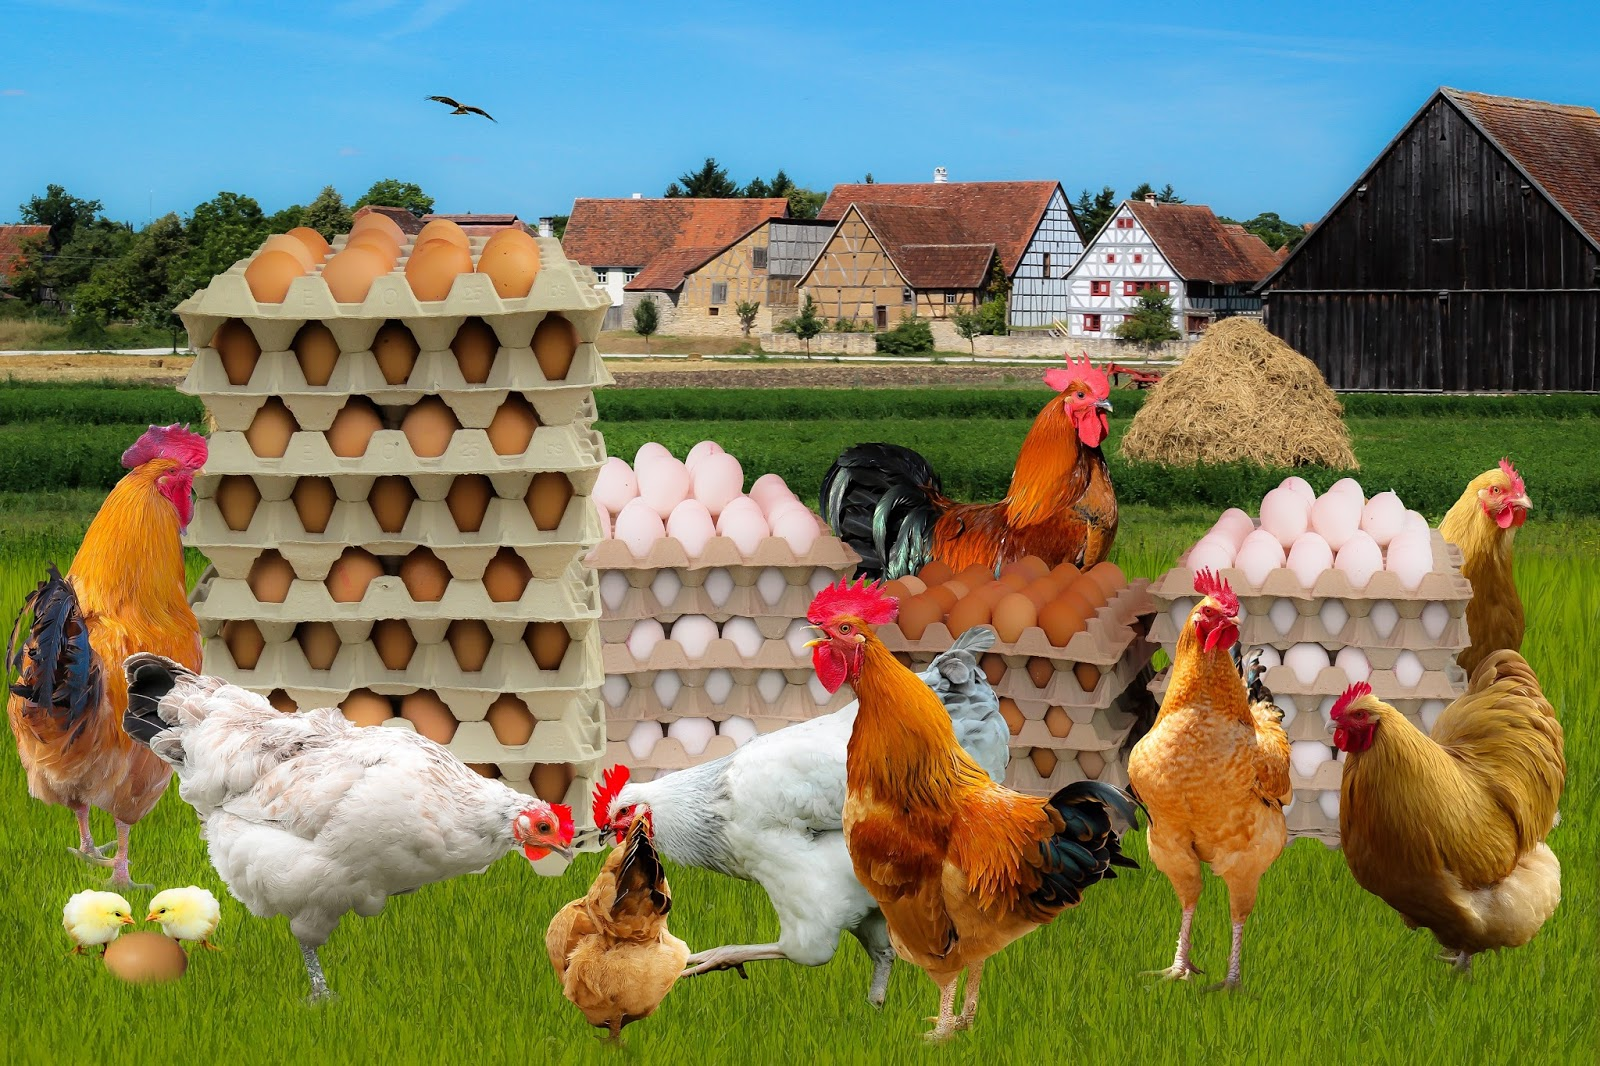 Picture of chickens and eggs.